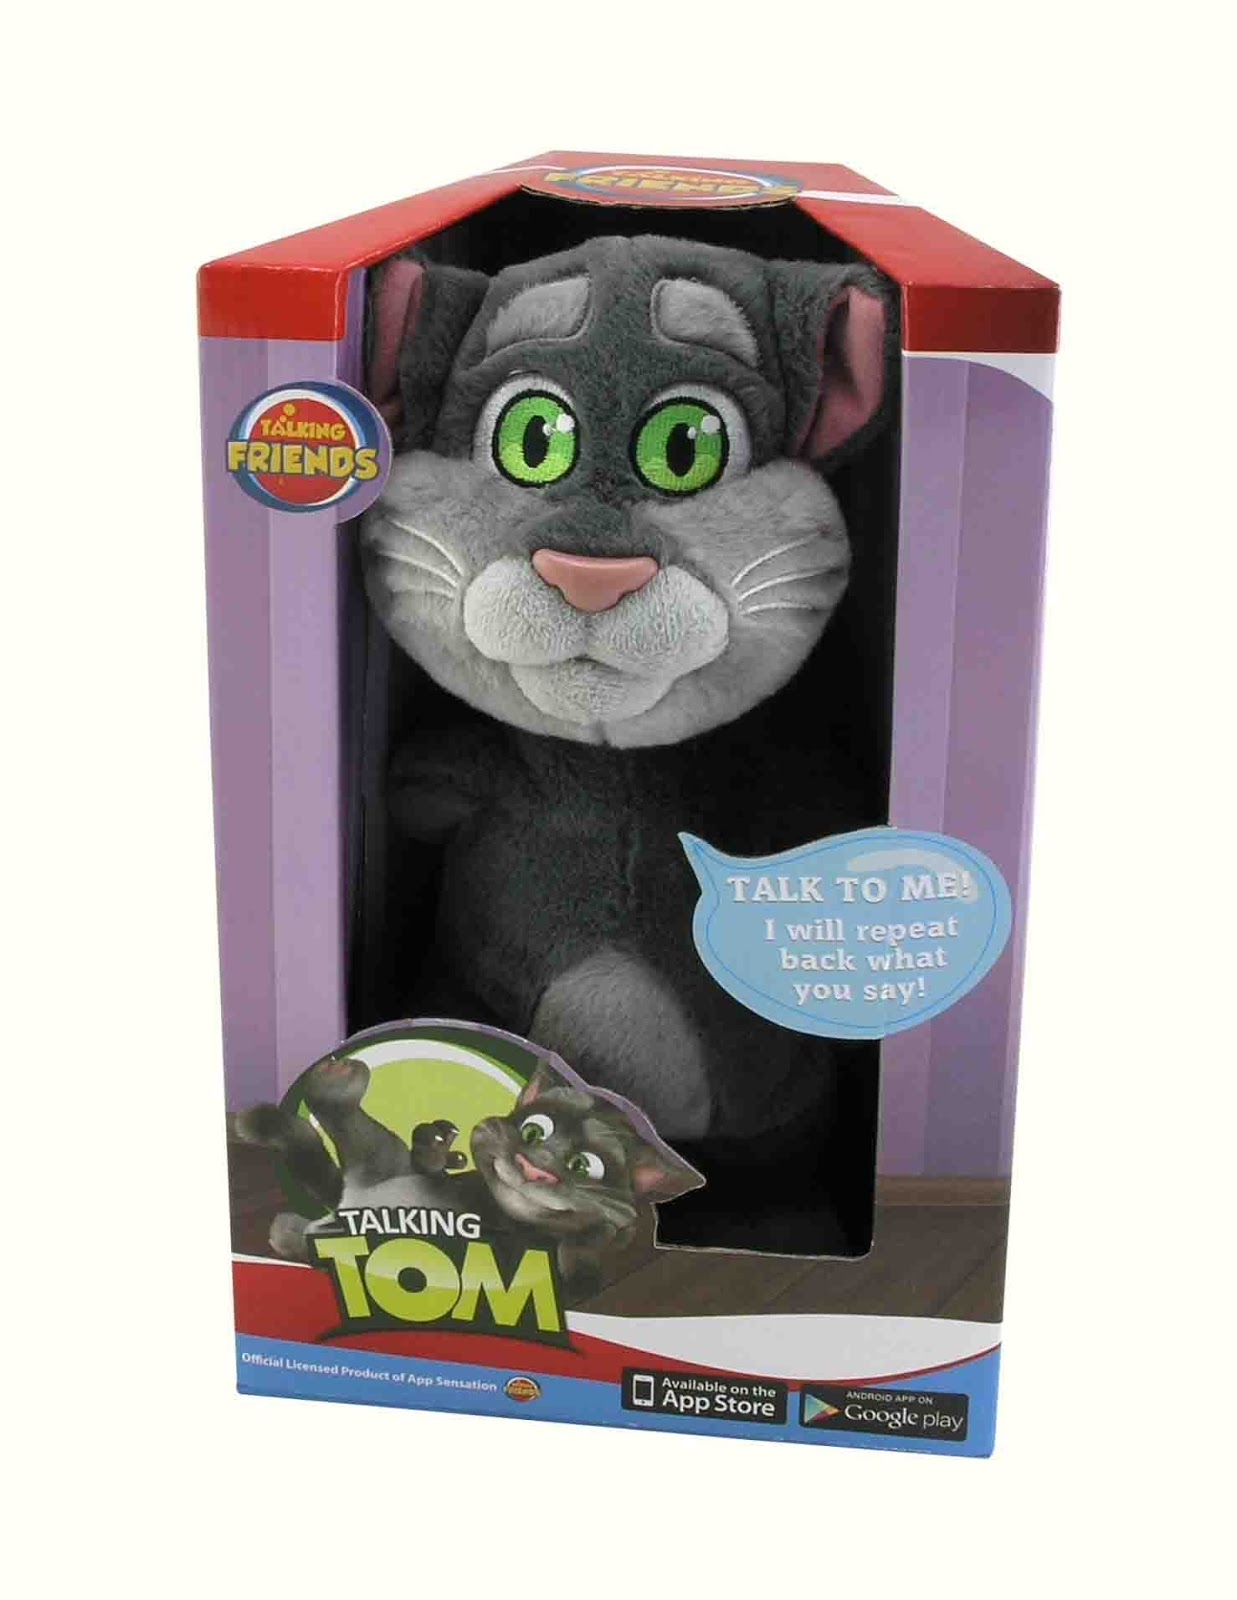 Twingle Mommmy Talking Tom Hot New Toy Giveaway